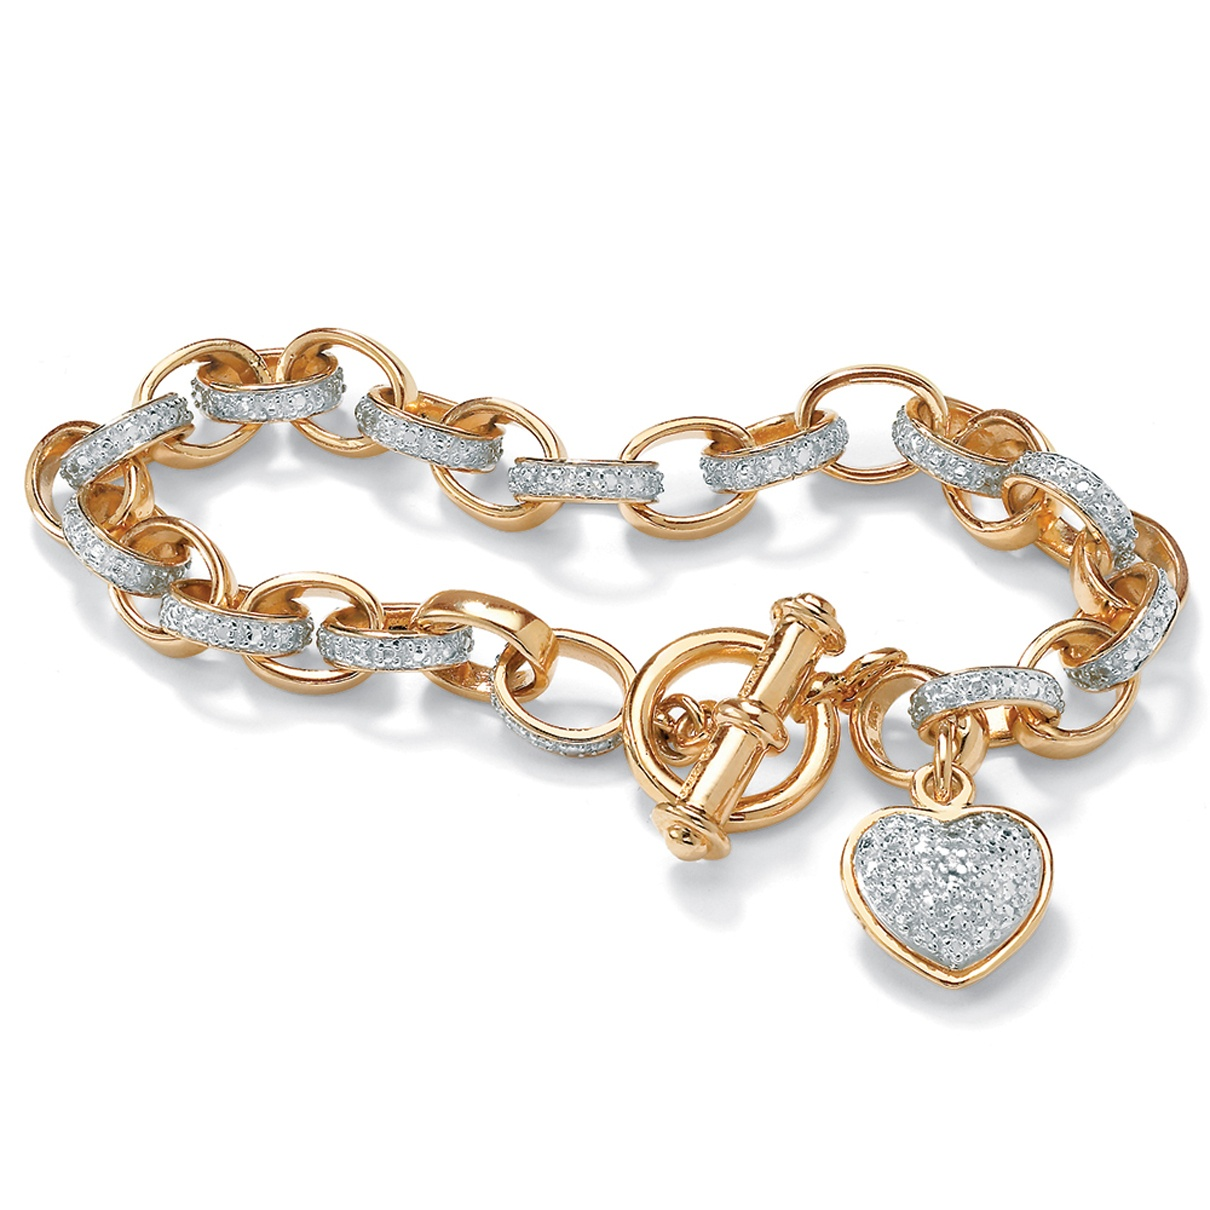 Diamond Accent Heart Charm Bracelet in 18k Gold over Sterling Silver 7.25""